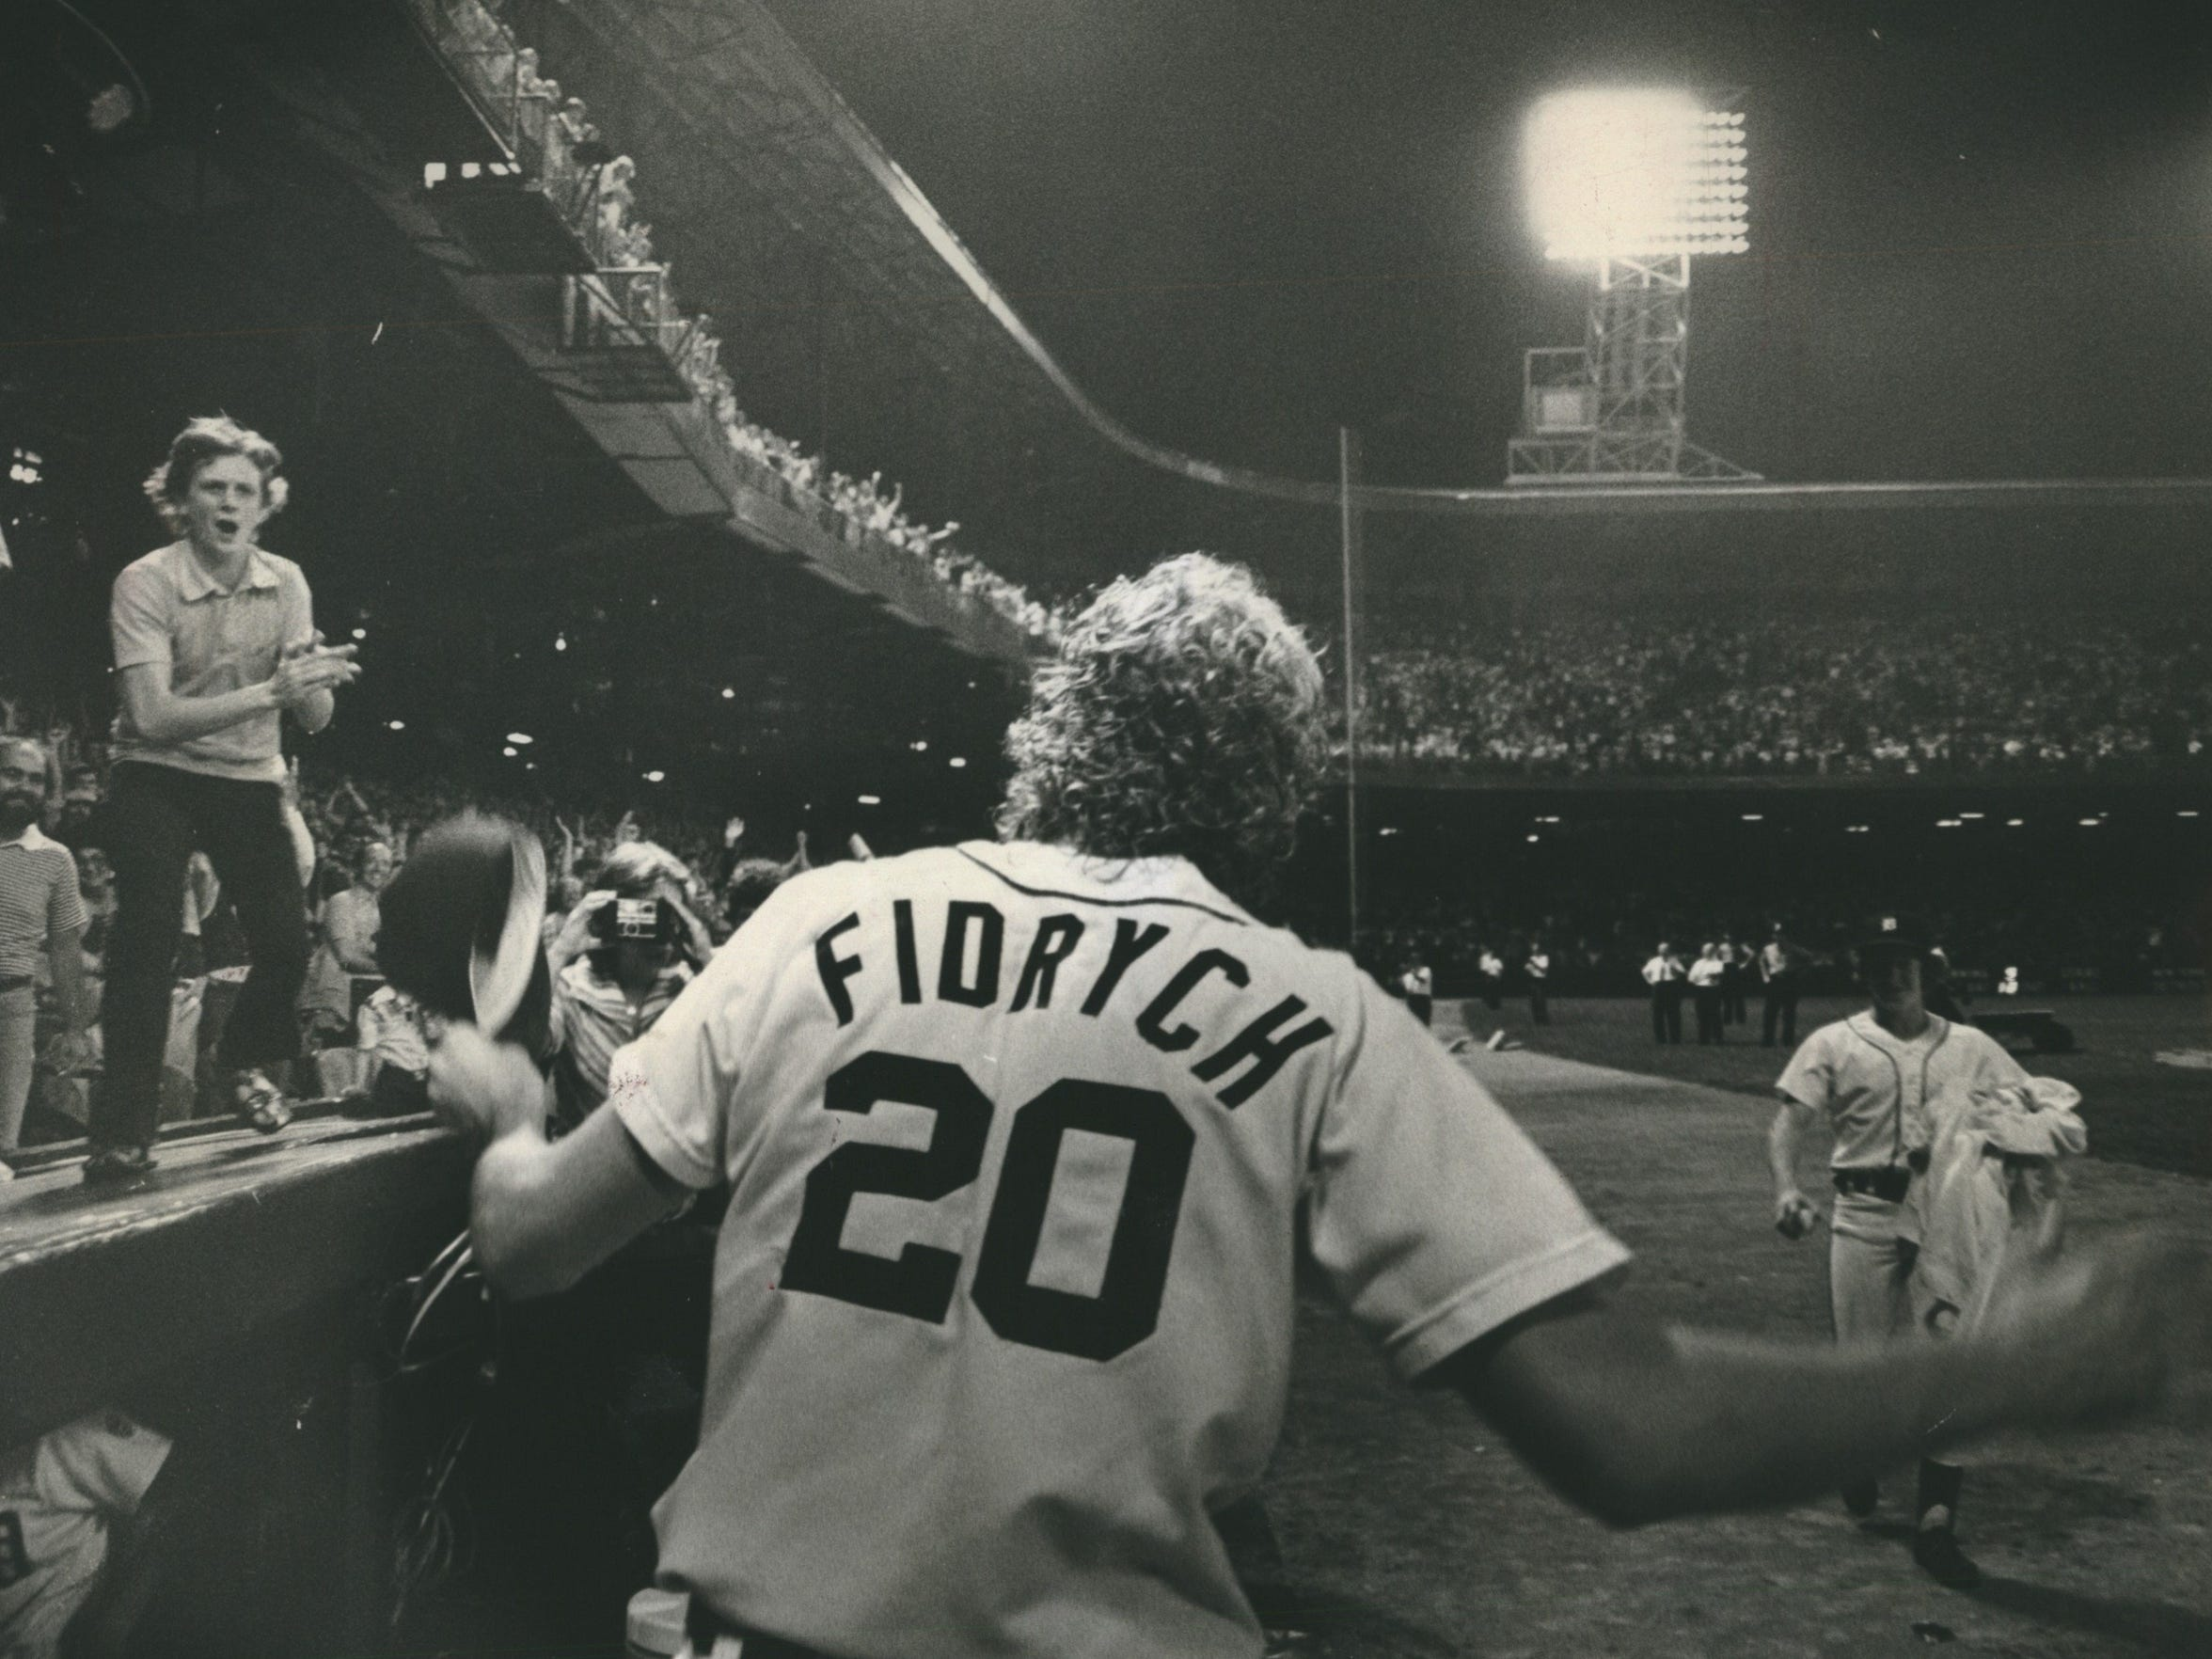 Mark Fidrych answers cheering crowd of 47,853 at Tiger